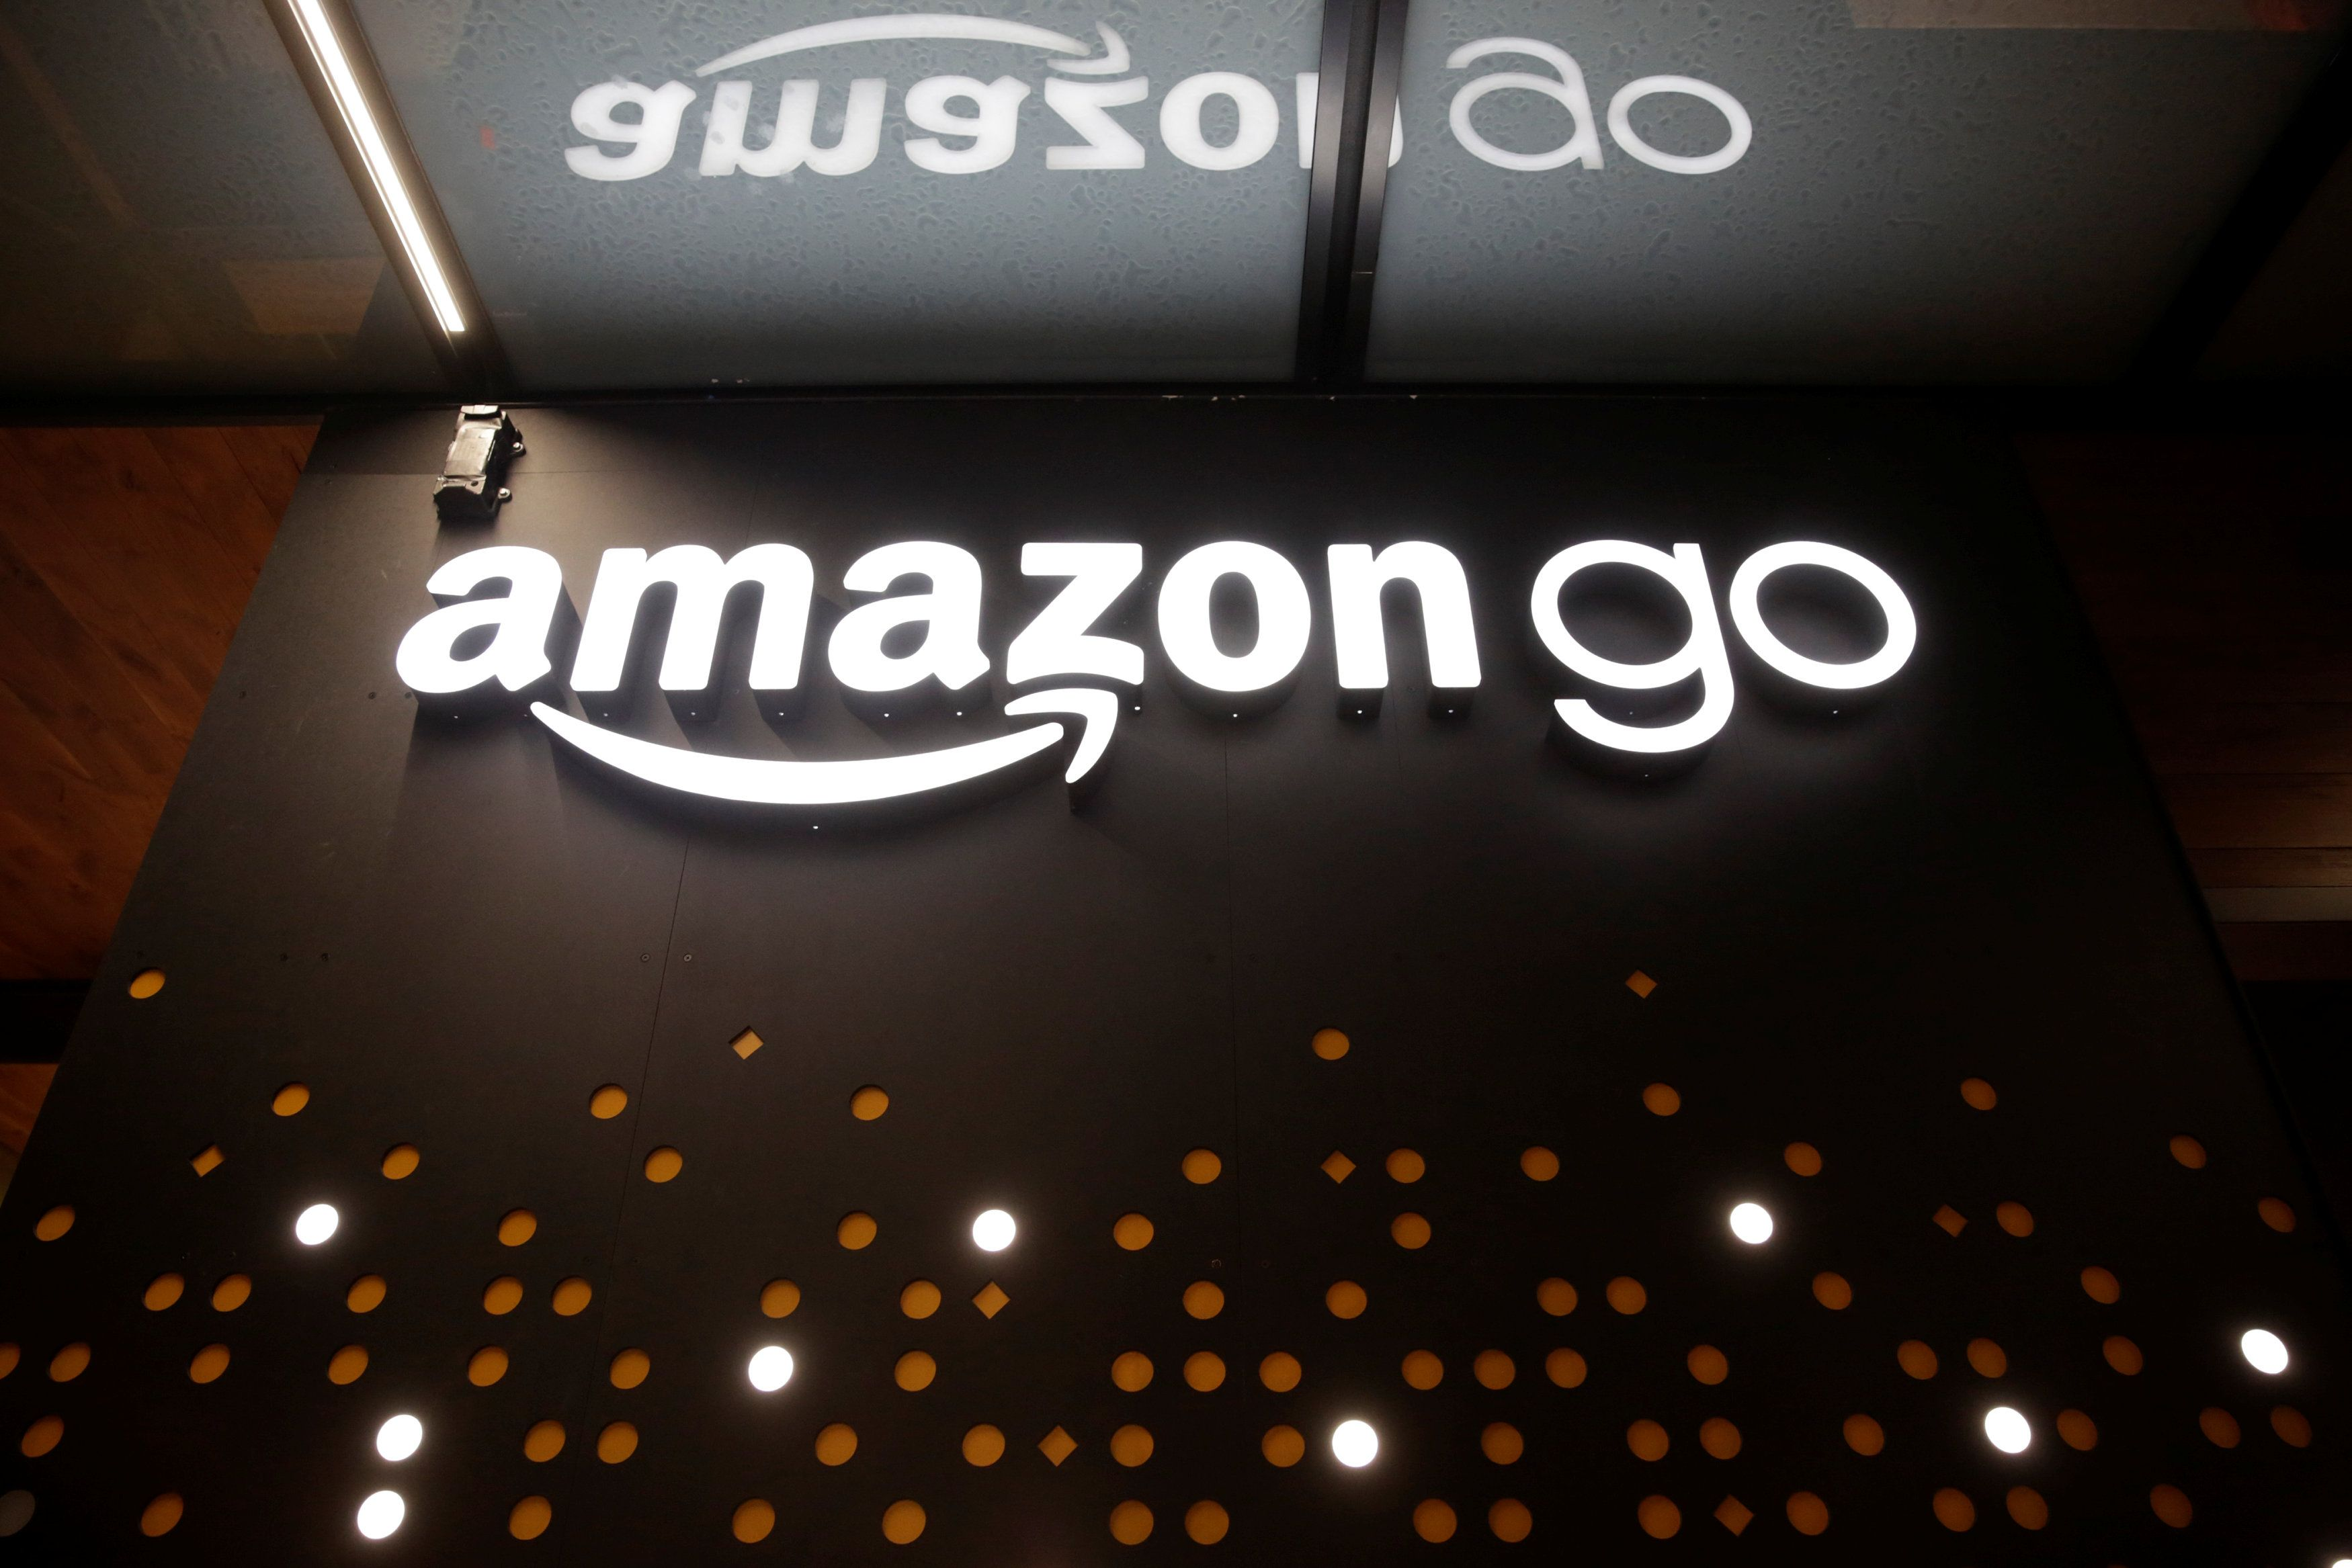 The sign for the Amazon Go brick-and-mortar grocery store without lines or checkout counters, is pictured in Seattle Washington, U.S. December 5, 2016. REUTERS/Jason Redmond